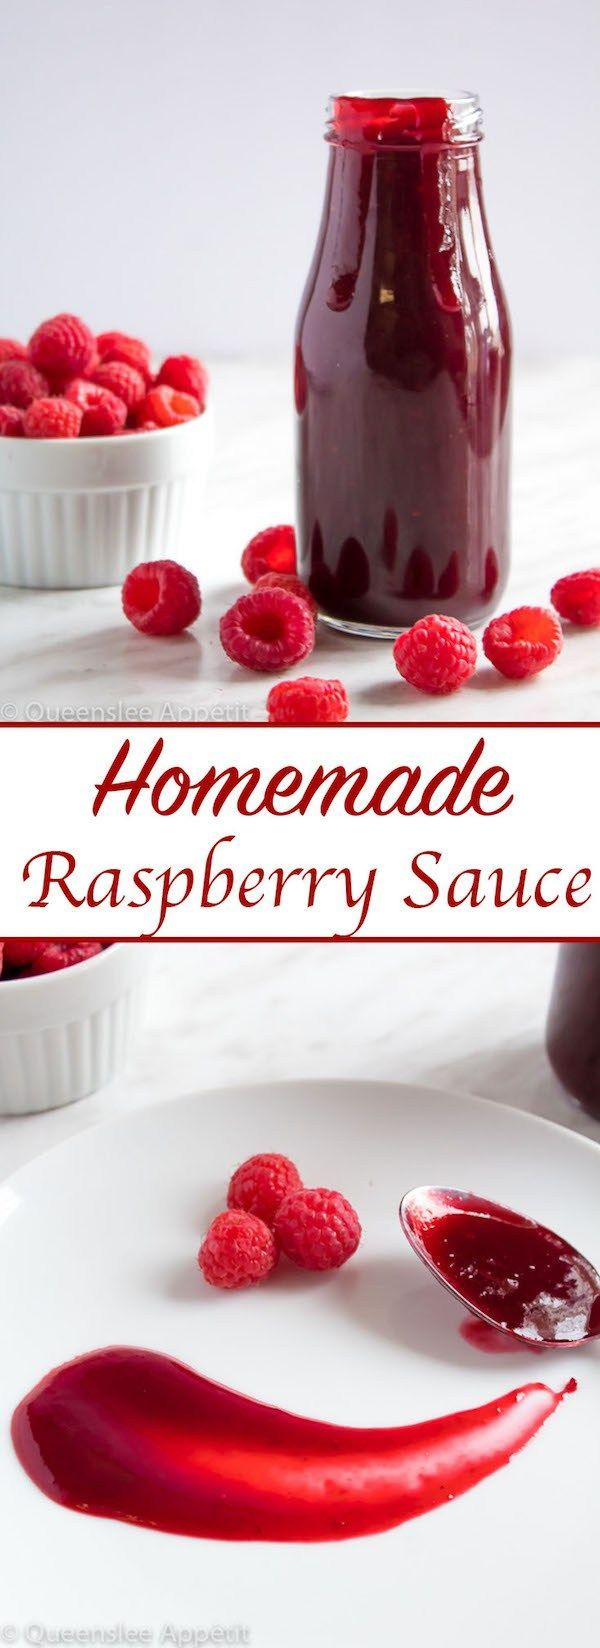 Raspberry Sauce This Homemade Raspberry Sauce is perfect for filling cakes and topping waffles, pancakes, scones, cheesecake and so much more!This Homemade Raspberry Sauce is perfect for filling cakes and topping waffles, pancakes, scones, cheesecake and so much more!